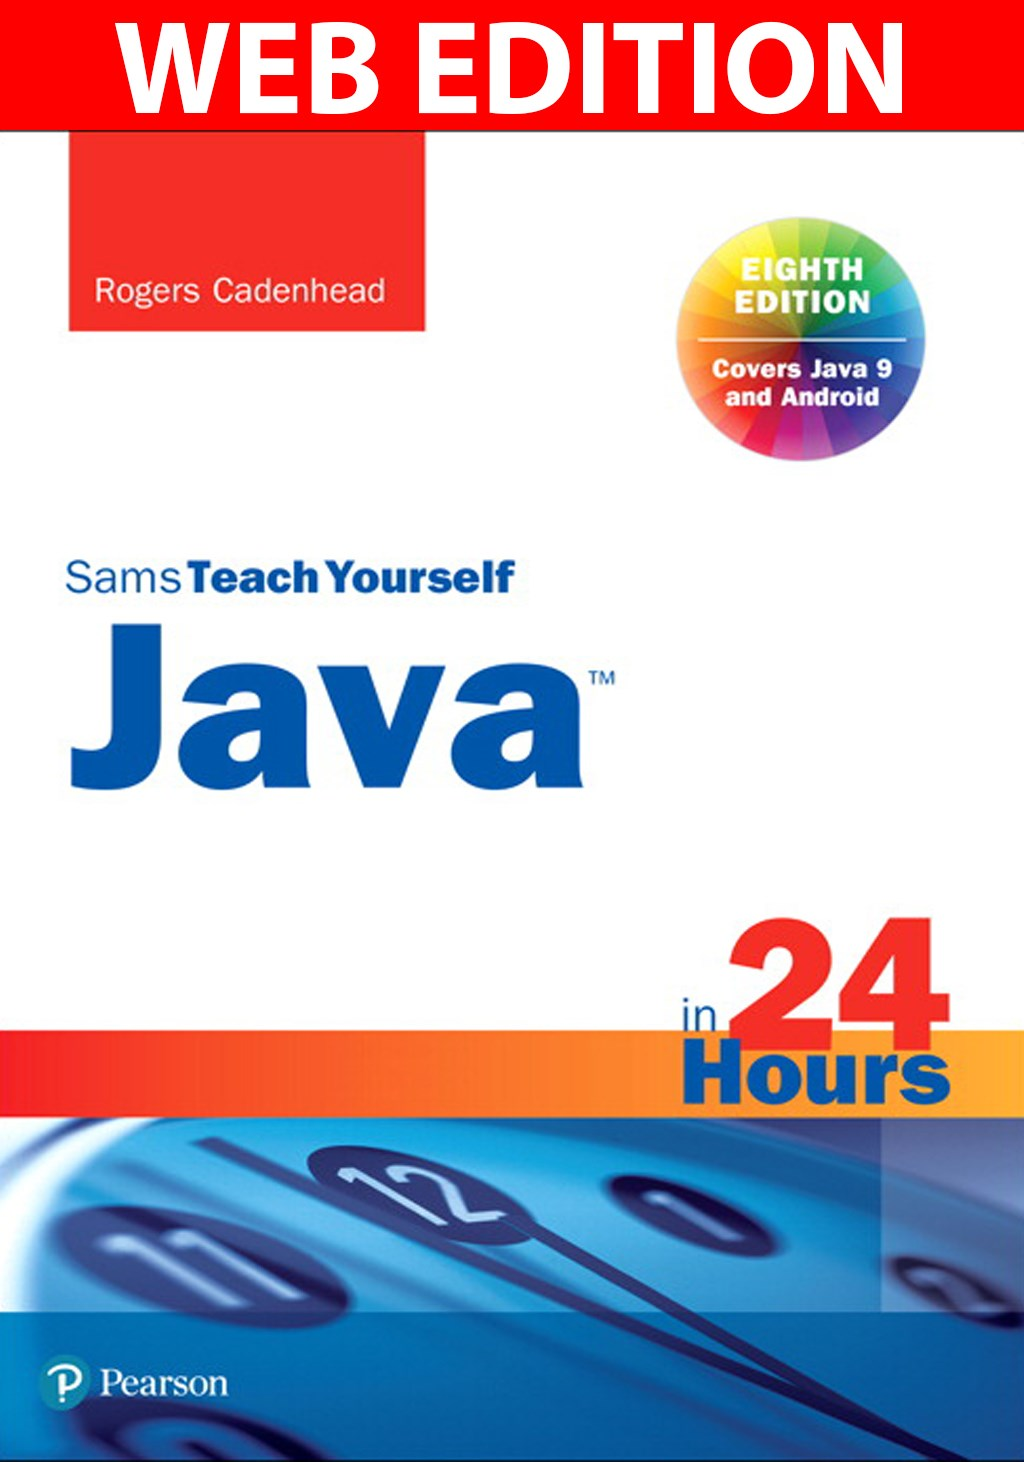 Sams Teach Yourself Java in 24 Hours (Covering Java 9), Web Edition, 8th Edition